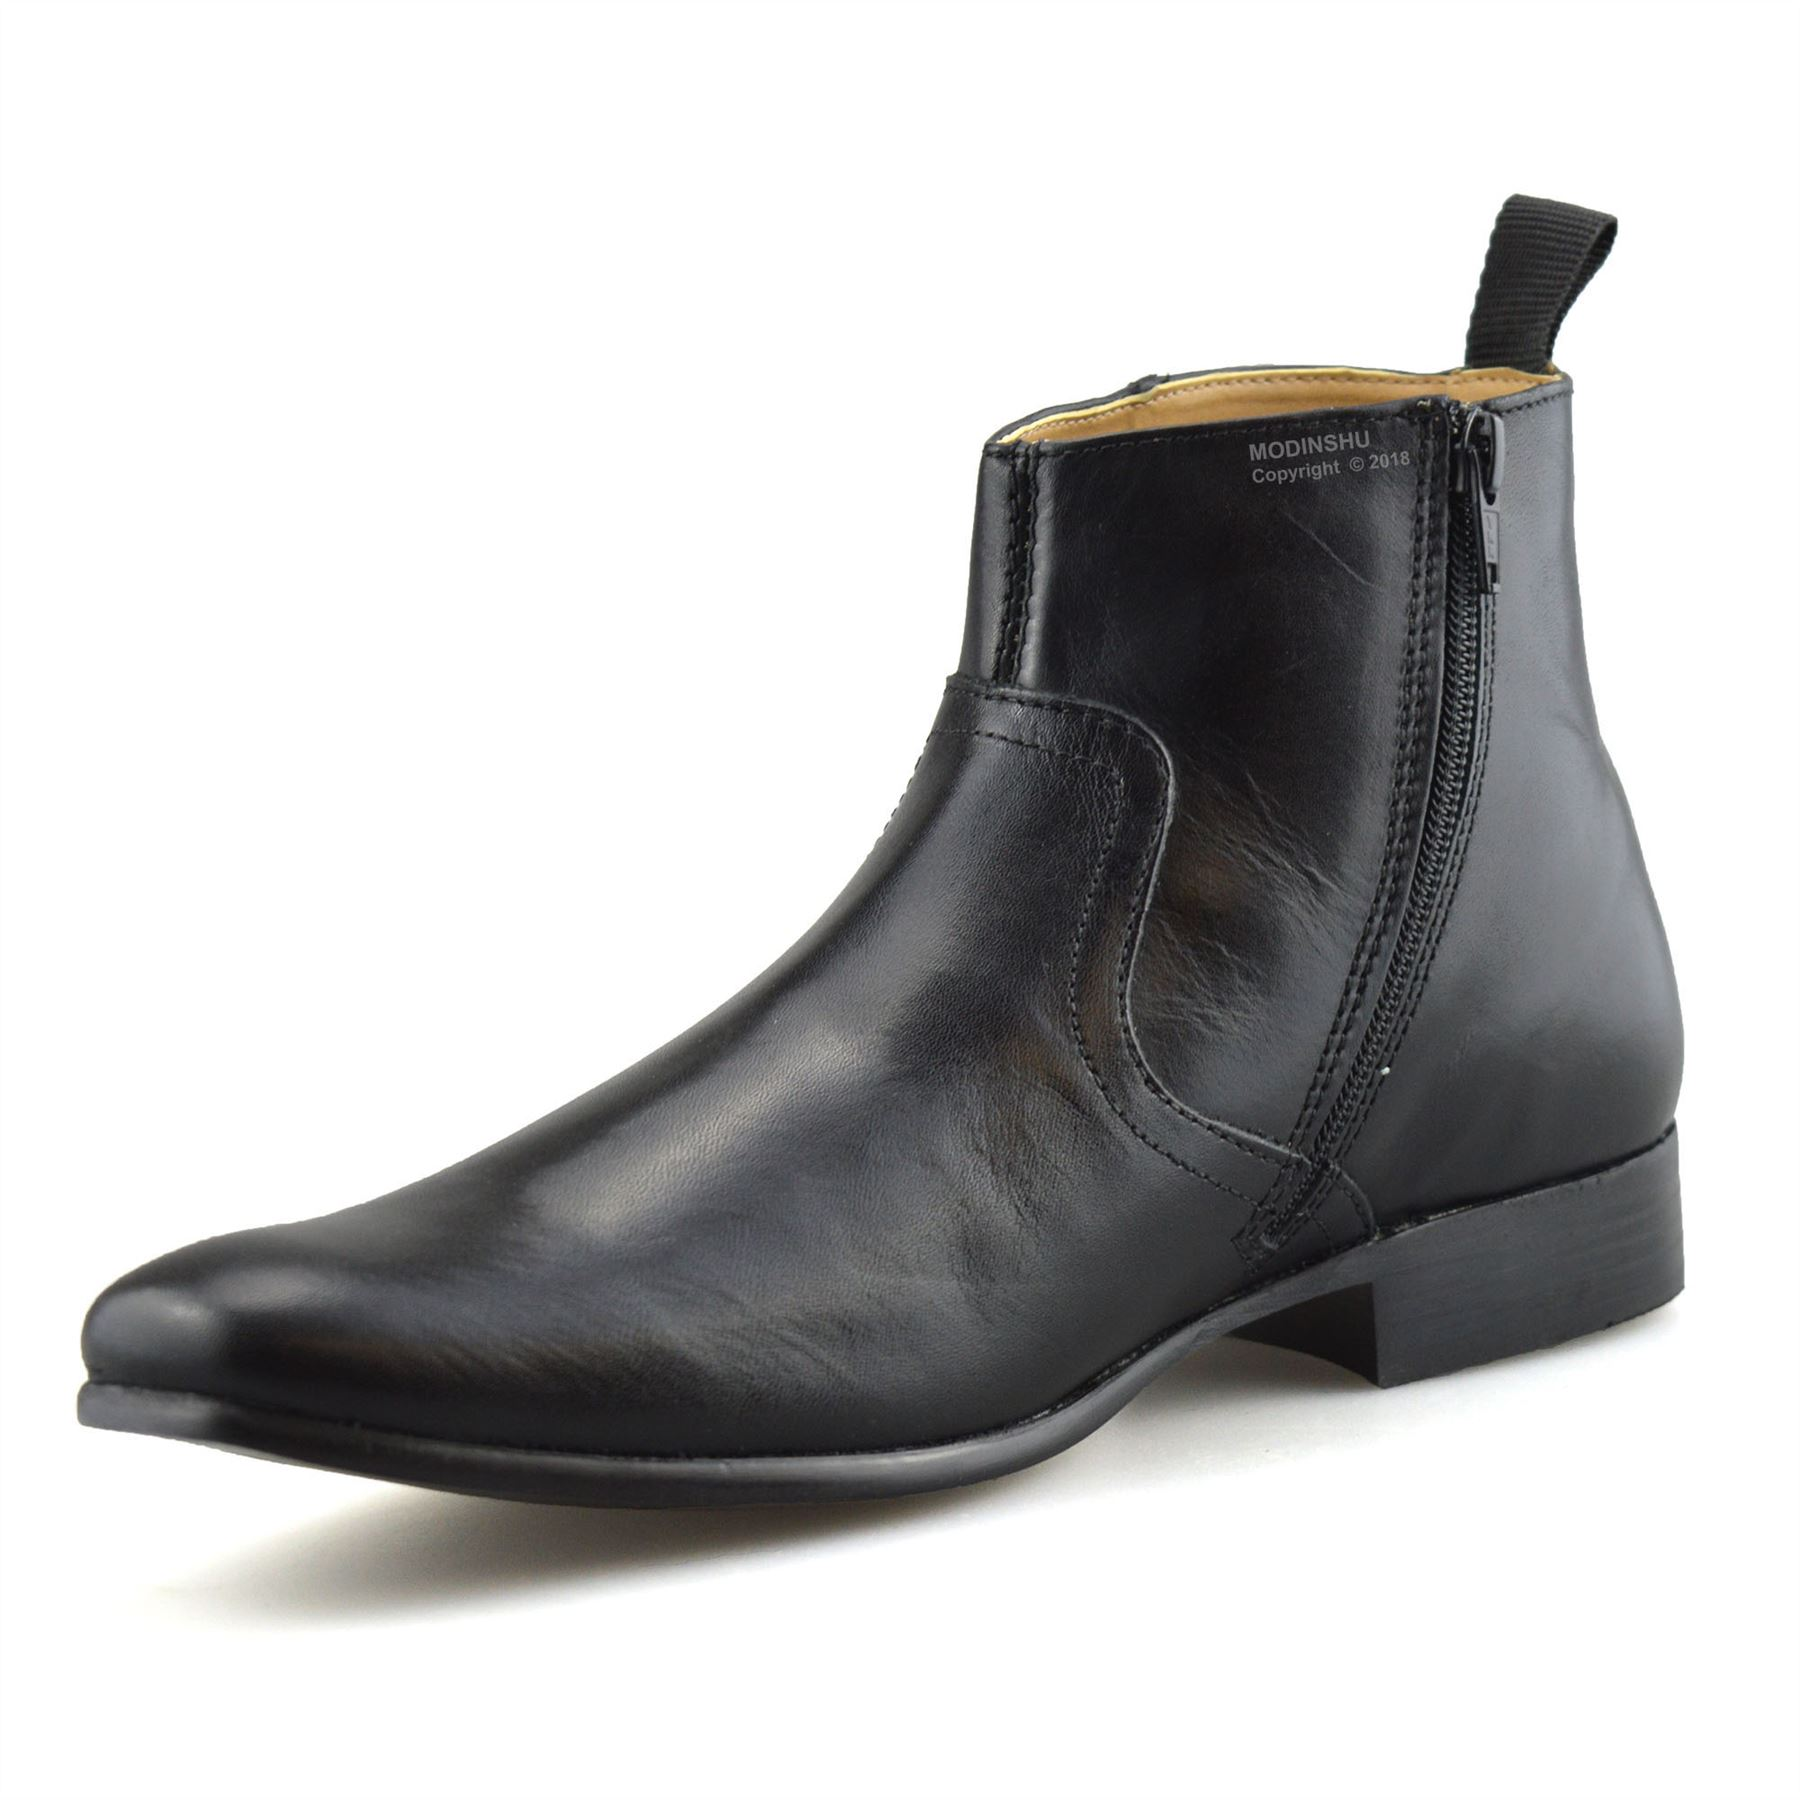 Mens-New-Leather-Zip-Up-Smart-Formal-Chelsea-Dealer-Work-Ankle-Boots-Shoes-Size thumbnail 13